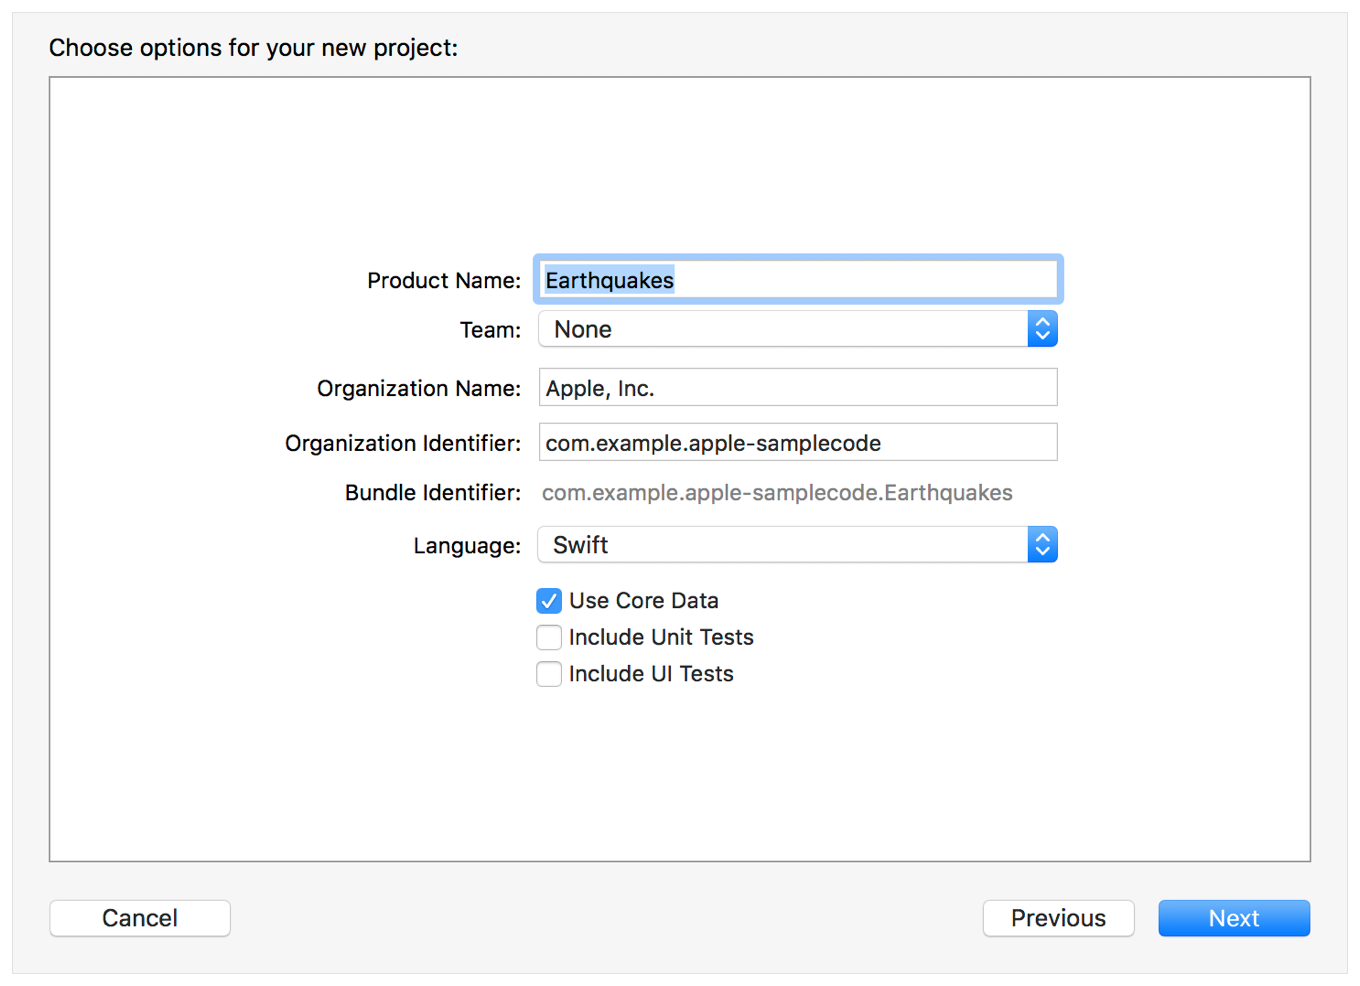 Screenshot showing the Use Core Data checkbox in the options for creating a new Xcode project. The checkbox appears after the language dropdown, and before the checkboxes for including Unit Tests and UI Tests.